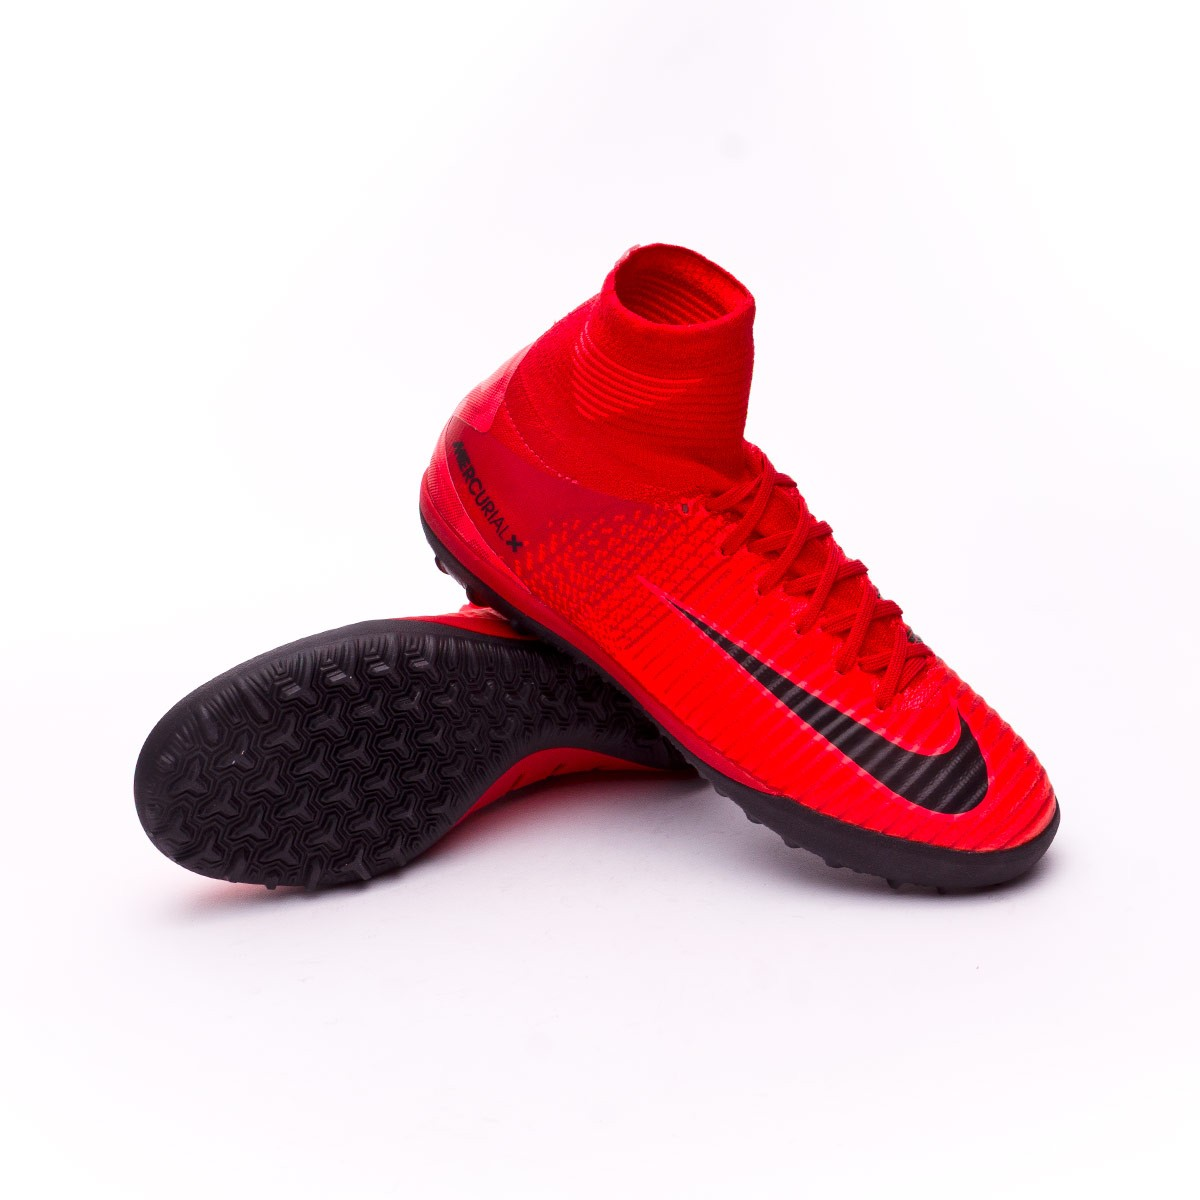 Tenis Nike MercurialX Proximo II DF Turf Niño University red-Black-Bright  crimson - Soloporteros es ahora Fútbol Emotion 819c09685ef7c